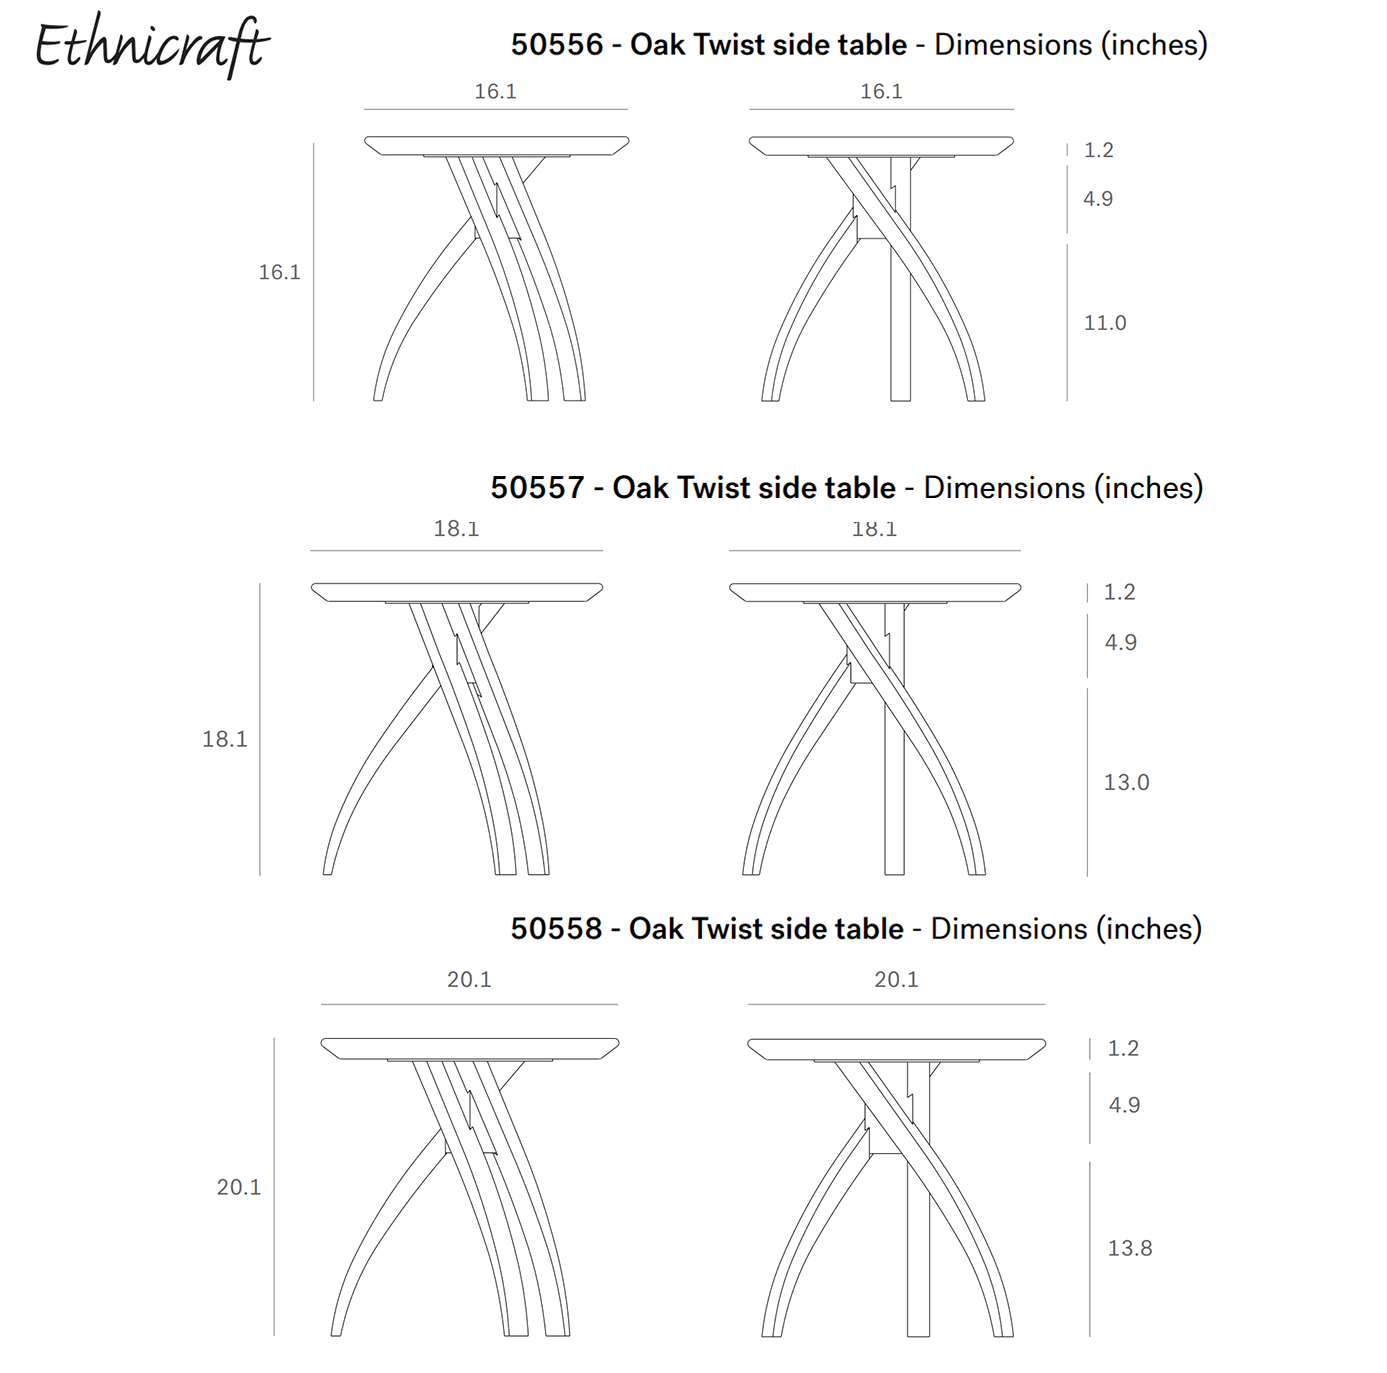 Ethnicraft Twist Side Table Dimensions